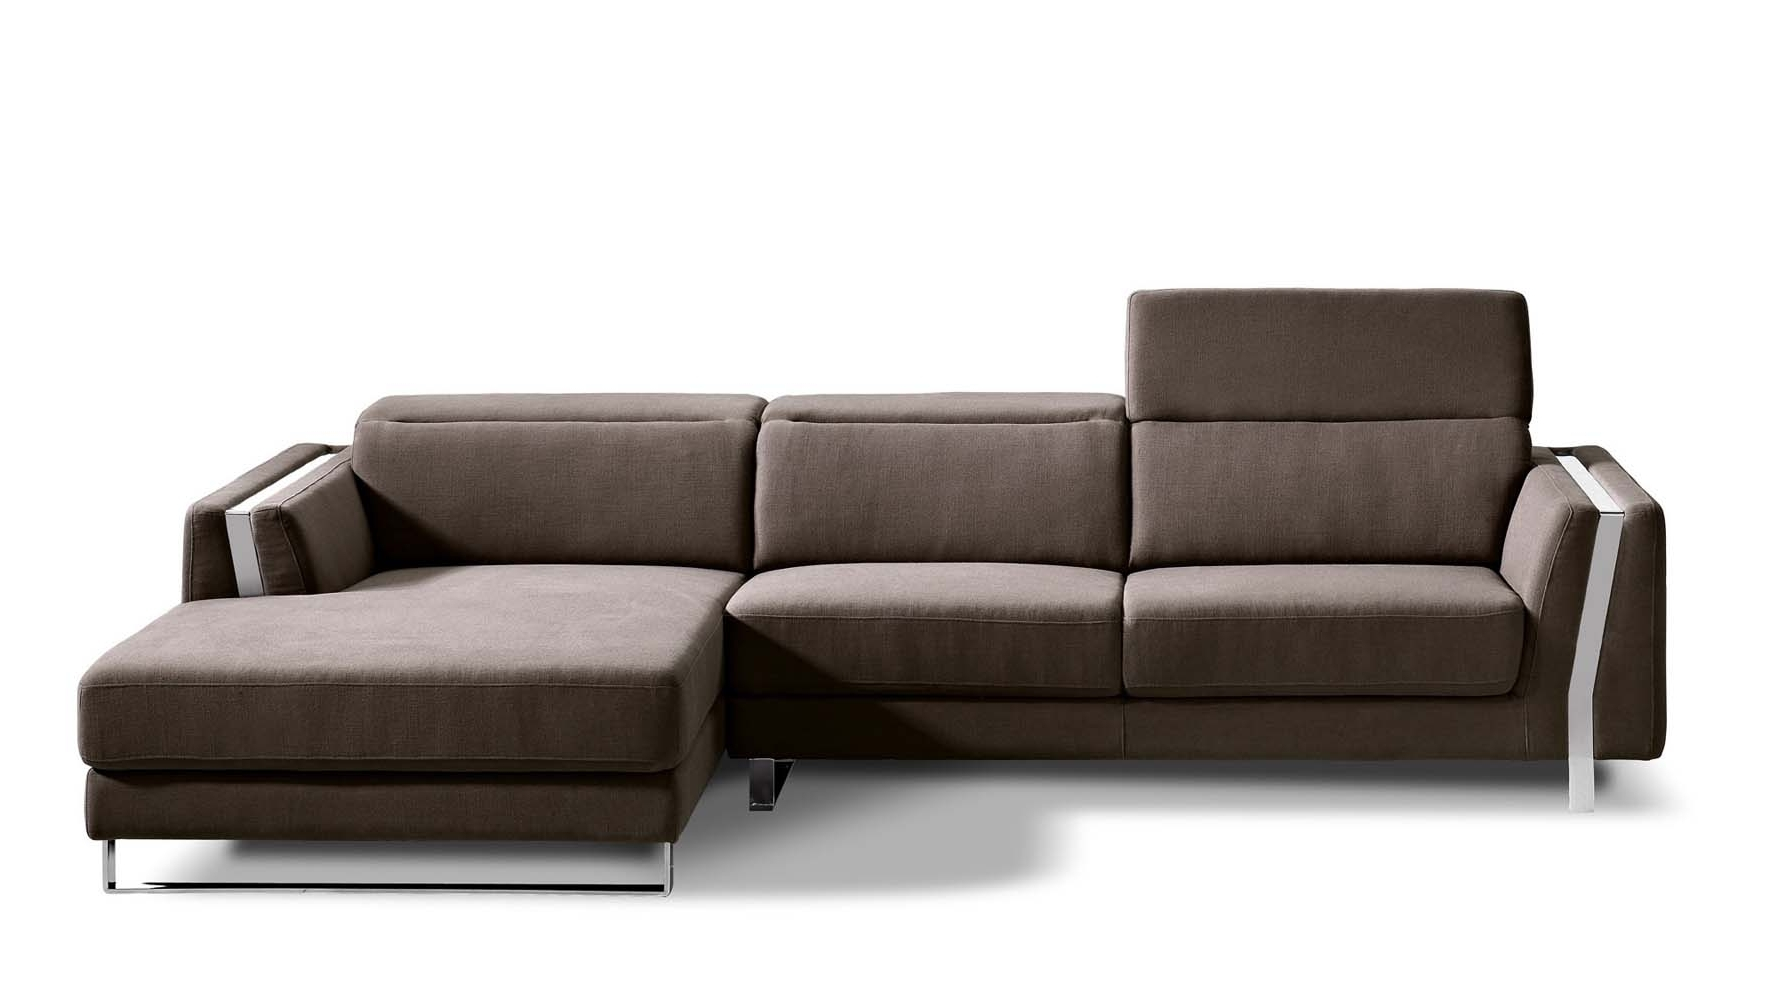 Zuri Furniture Throughout Most Recently Released El Paso Texas Sectional Sofas (View 15 of 15)